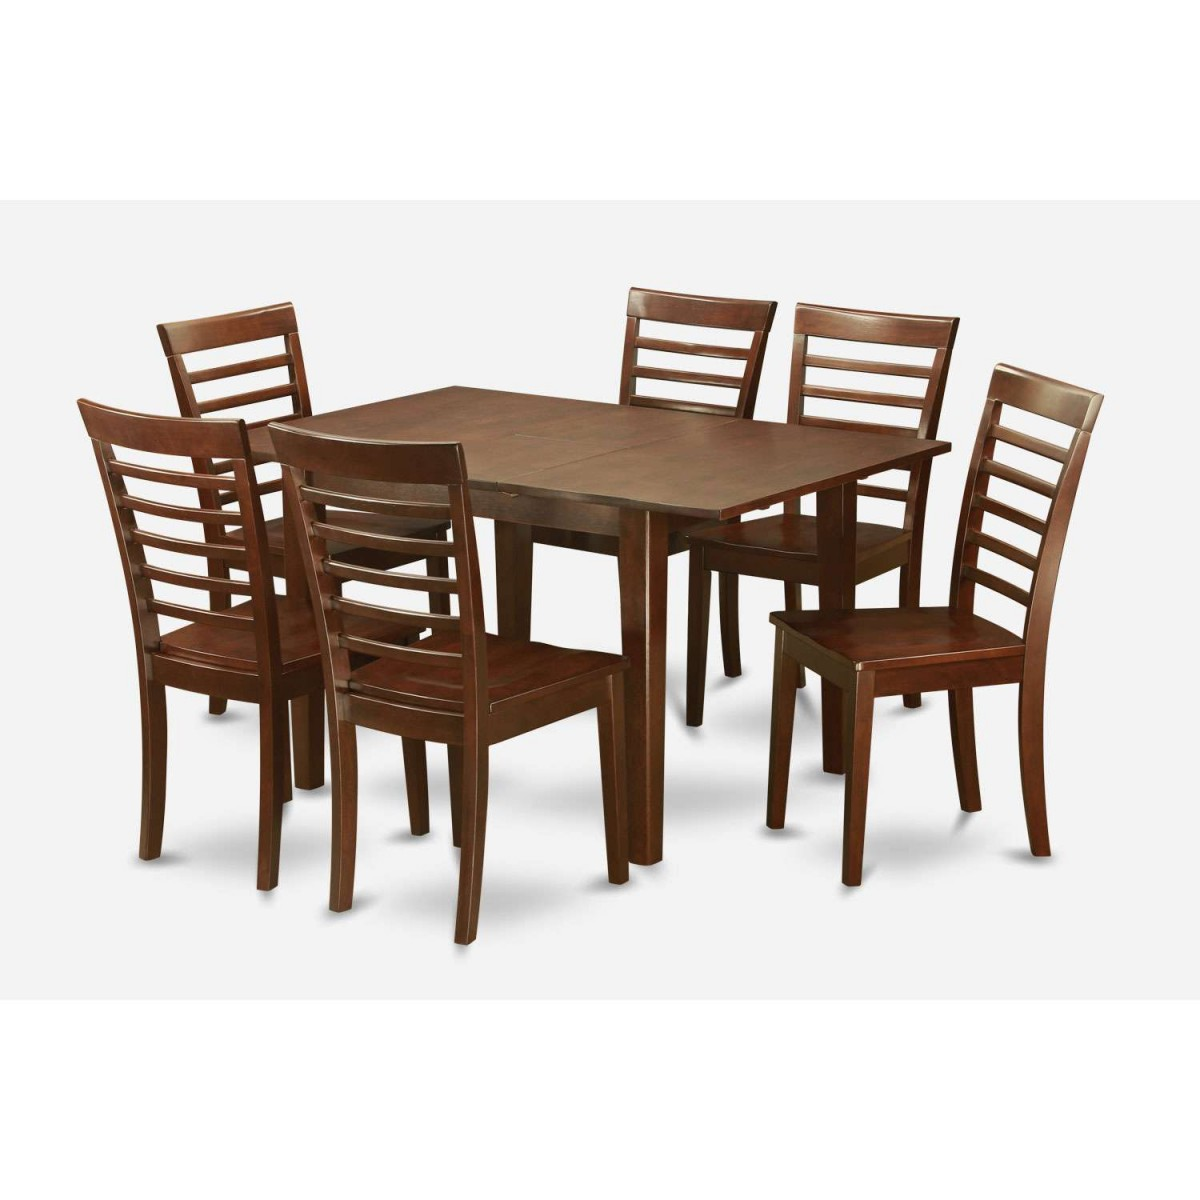 East West Furniture Milan 7 Piece Dining Table Set